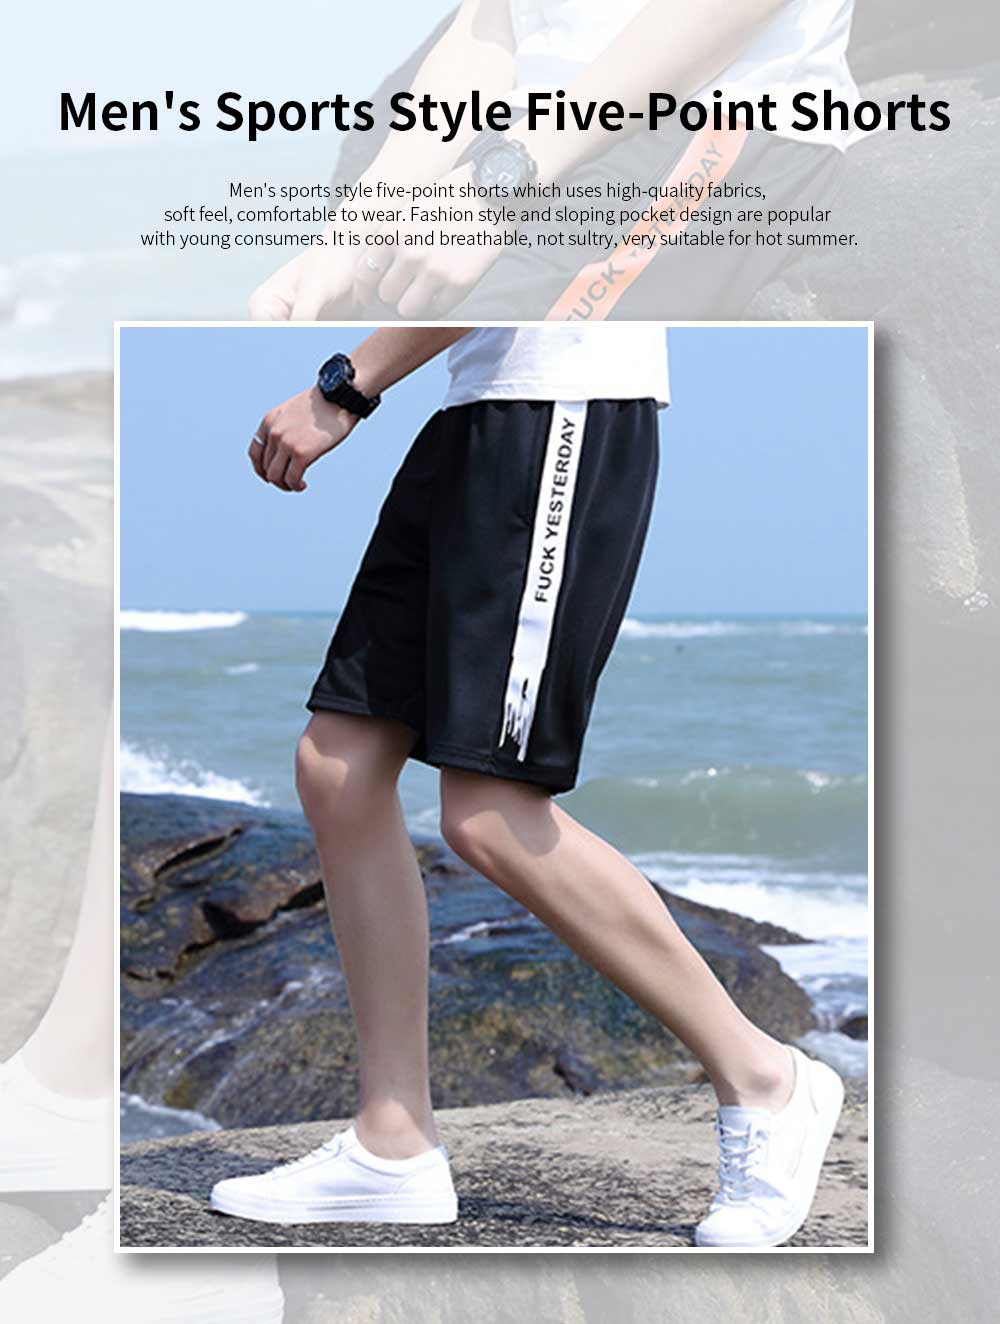 Men's Sports Style Shorts Students' Five-Point Shorts New Fashion Simple & leisure Pants For Summer 0